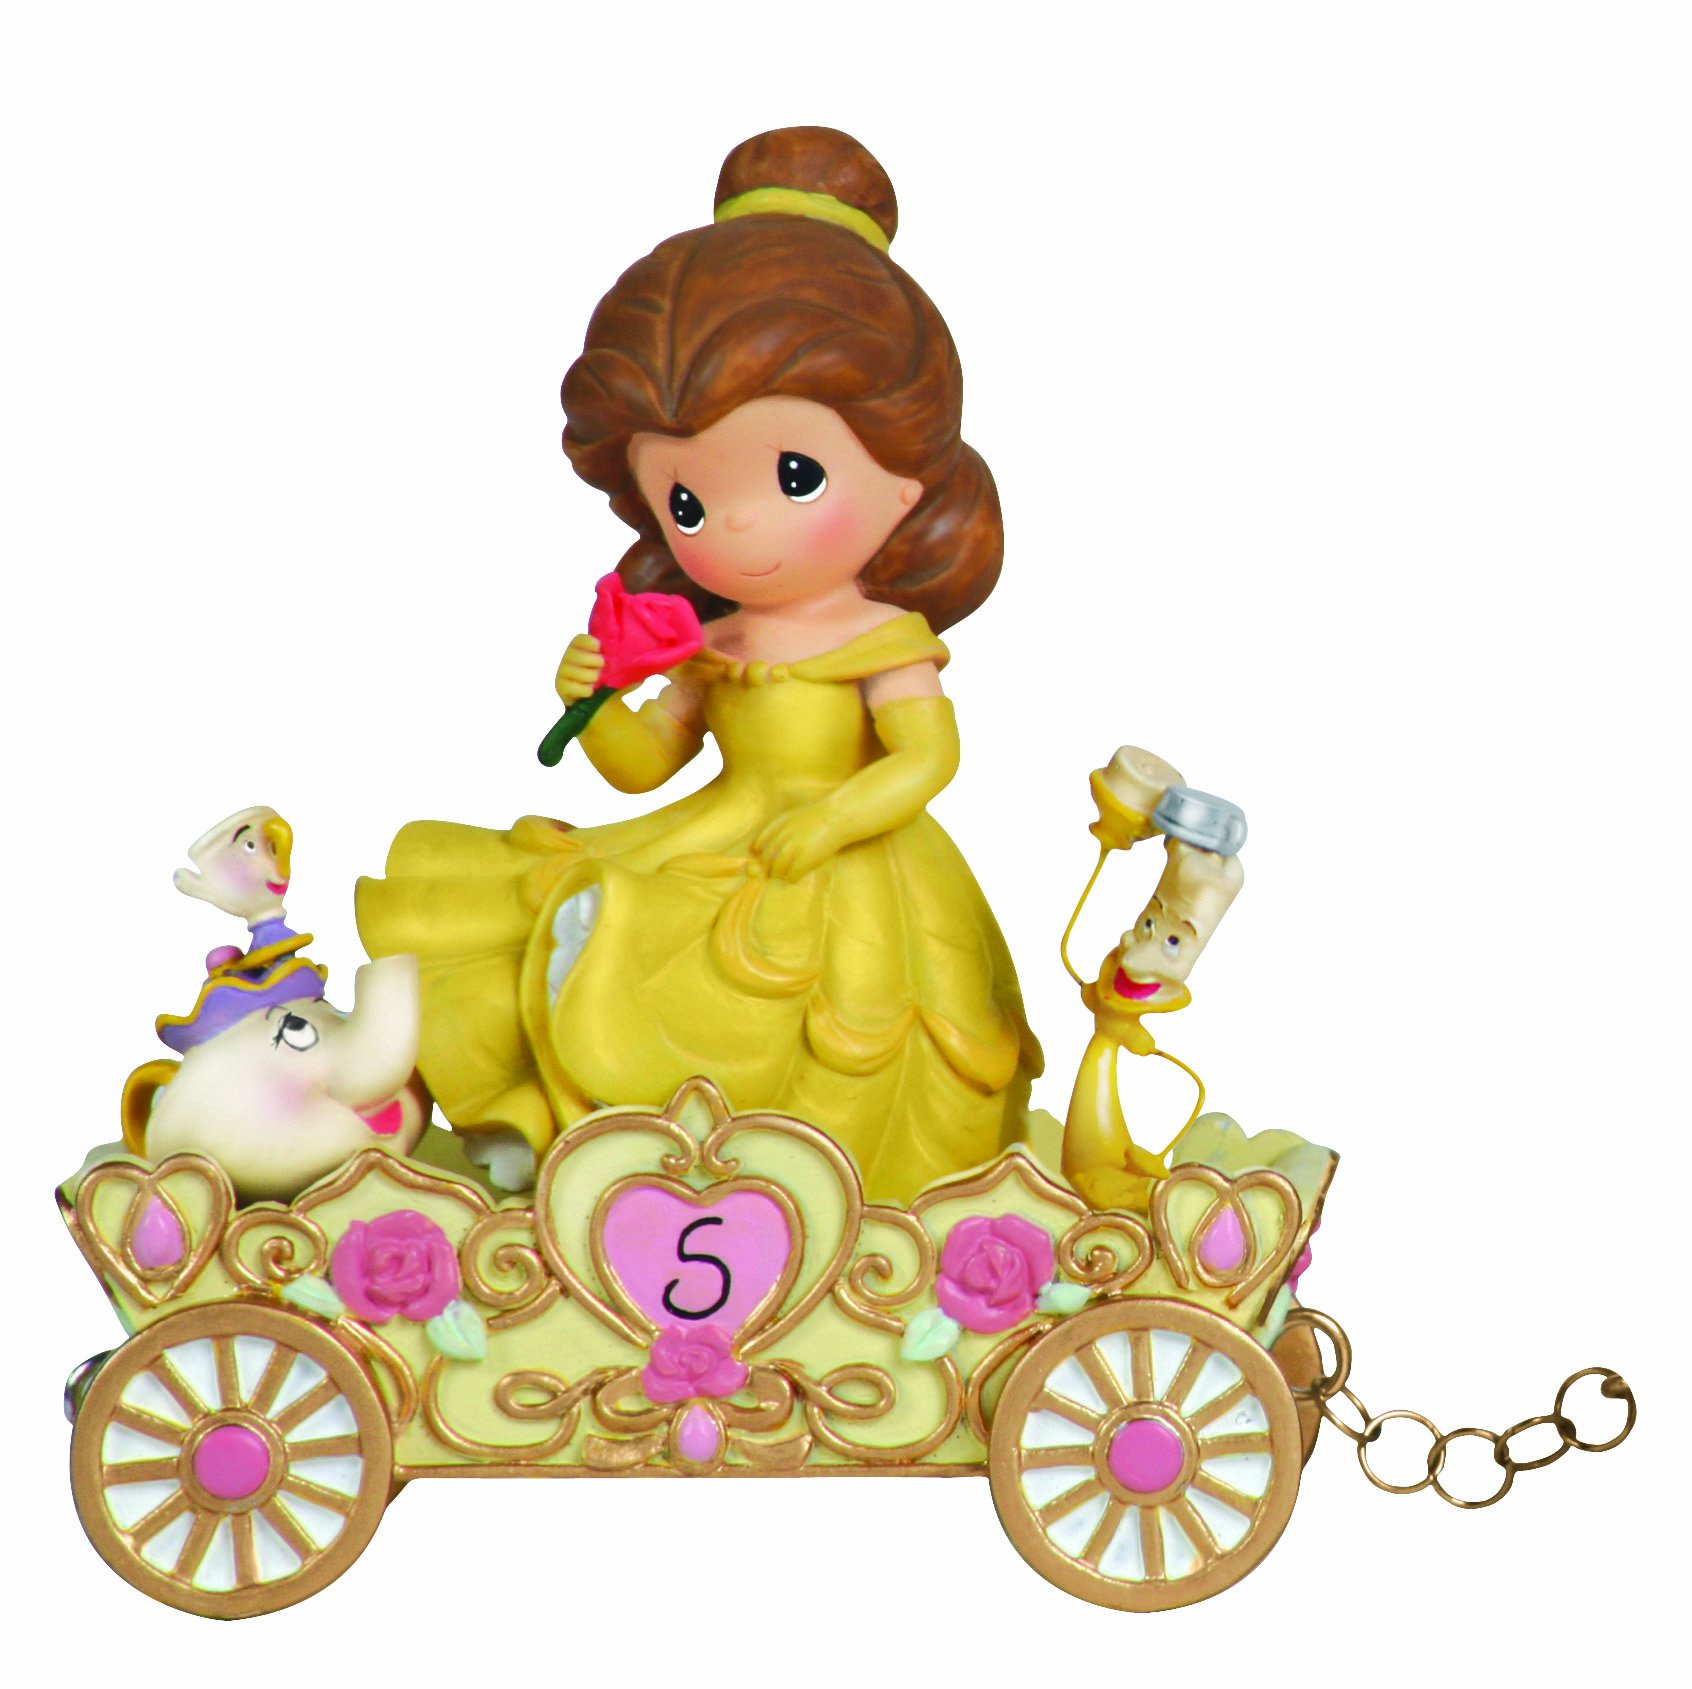 Precious Moments, Disney Showcase Collection, A Beauty To Behold At Five Years Old, Disney Birthday Parade, Age 5, Resin Figurine, 104407 by Precious Moments